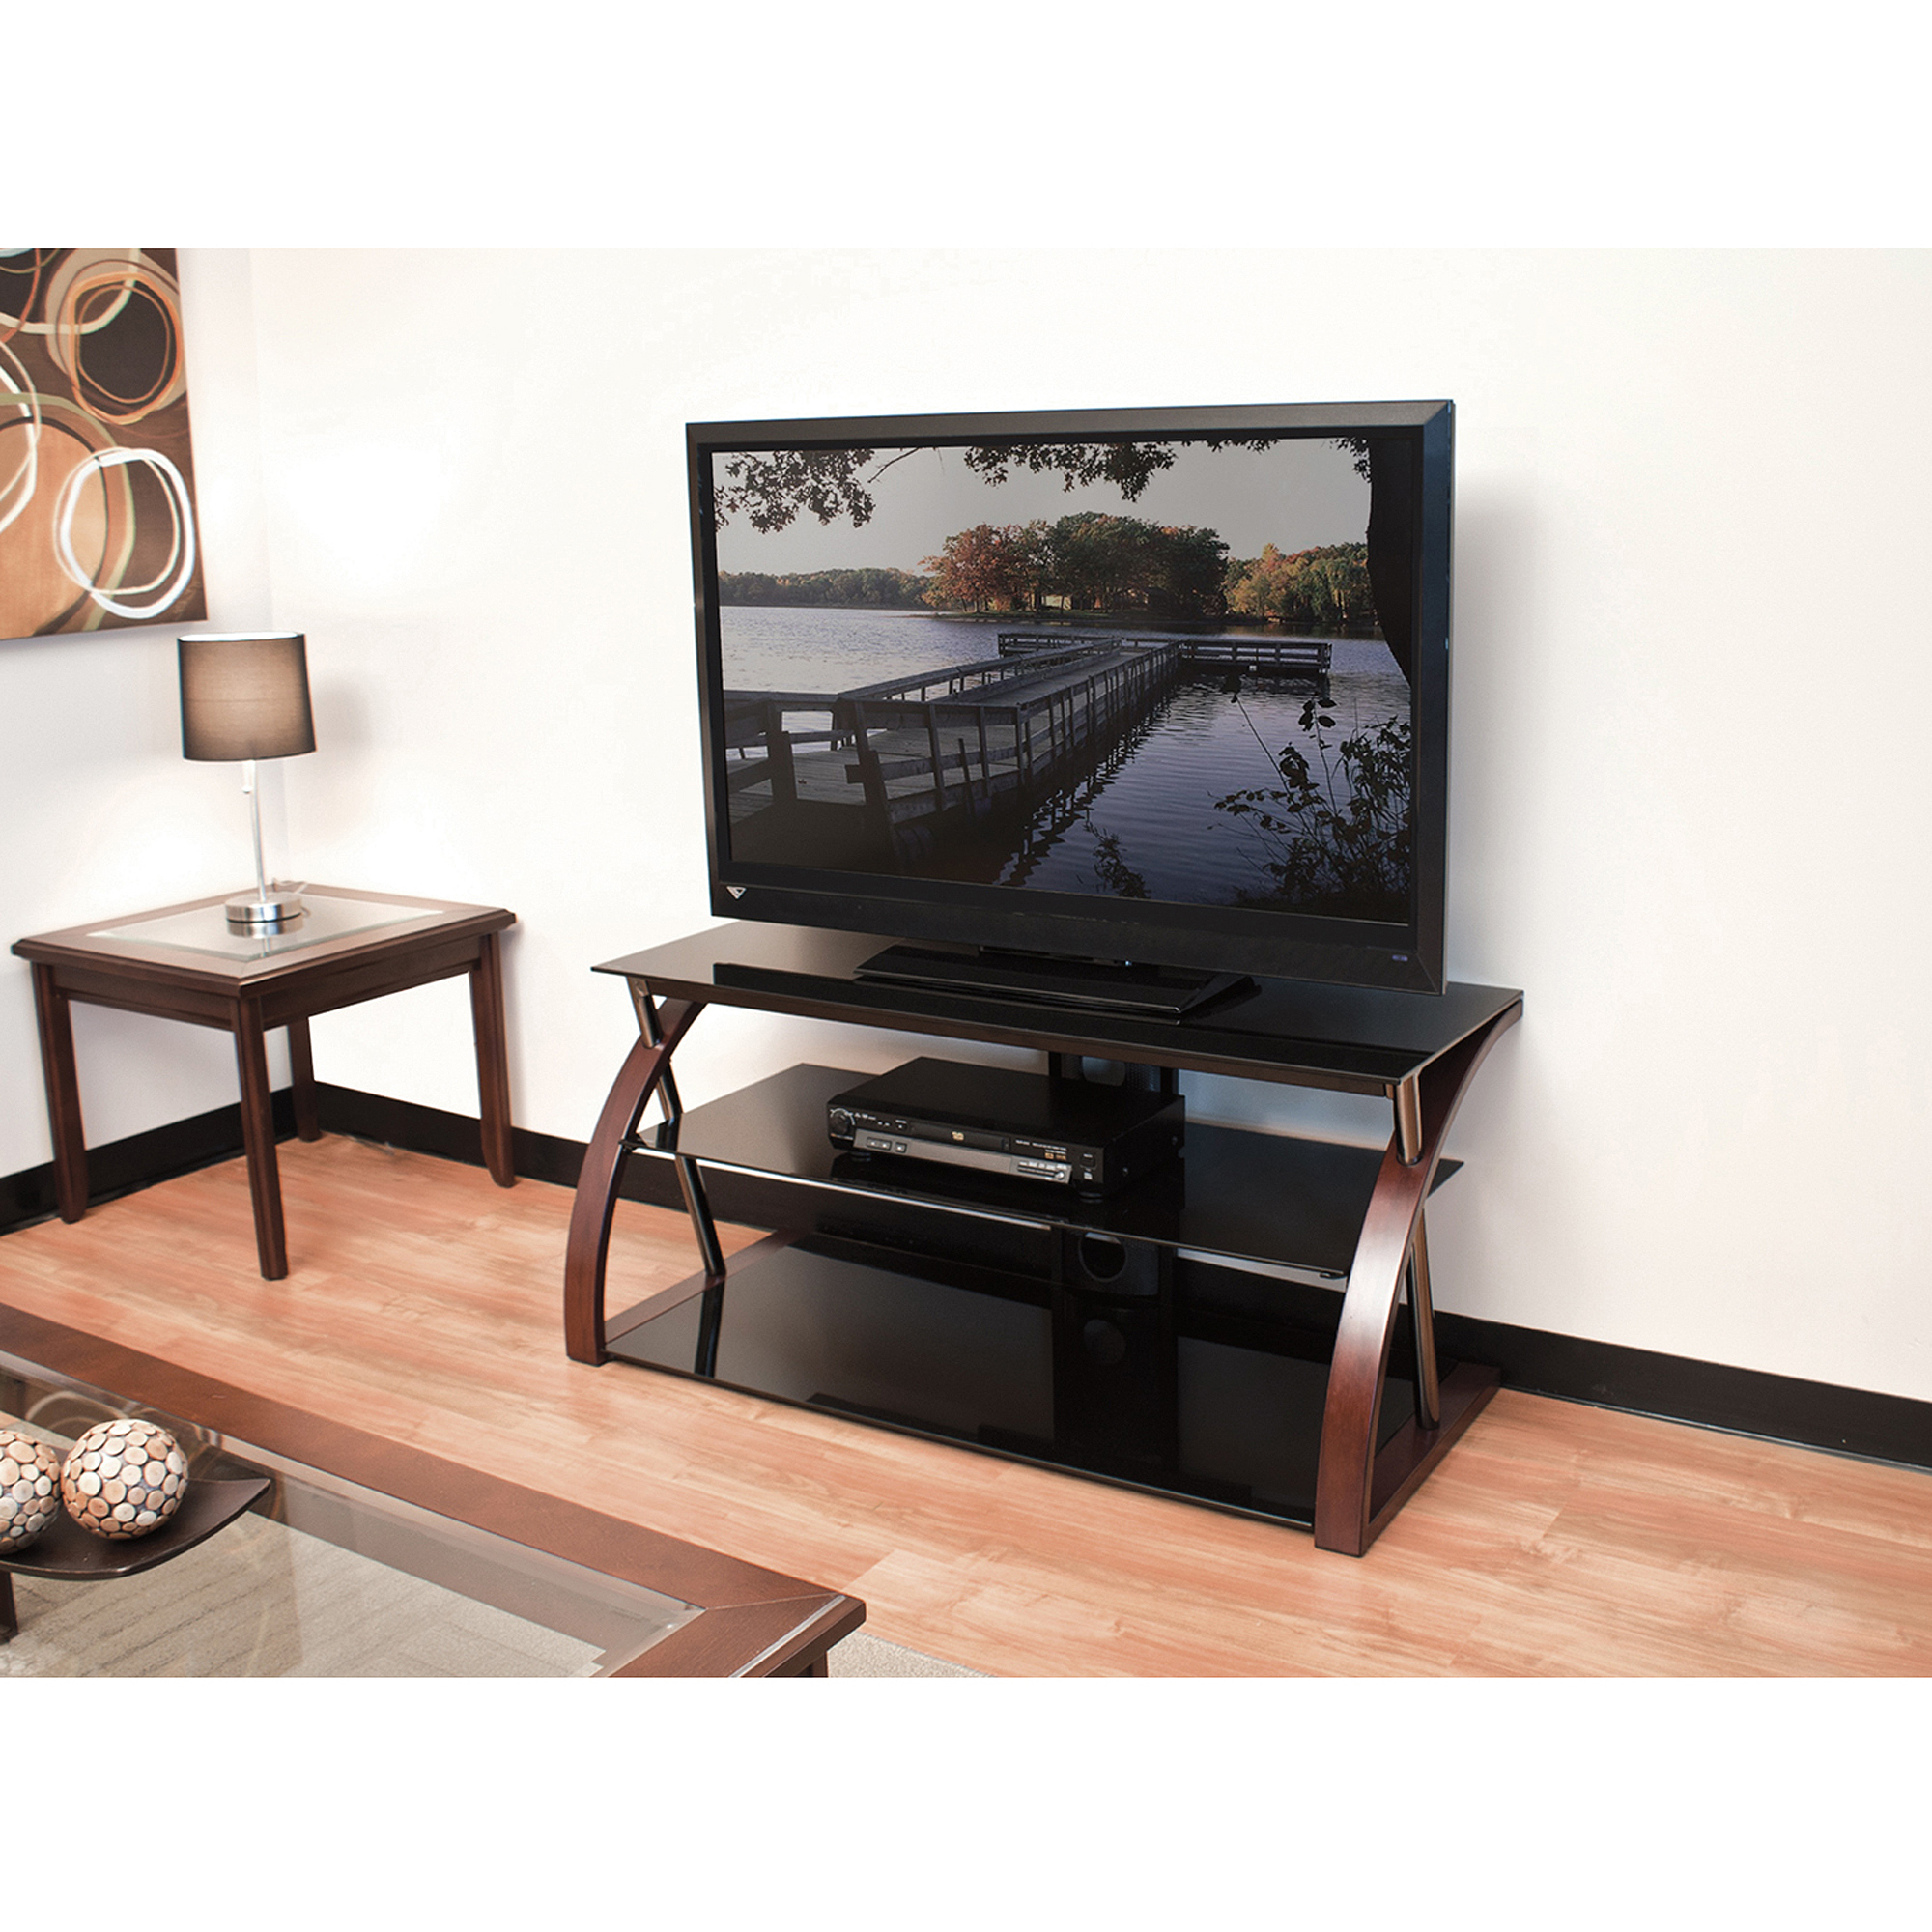 """Techcraft 48"""" Wood, Metal And Glass Tv Stand For Tvs Up To With Spellman Tv Stands For Tvs Up To 55"""" (View 14 of 20)"""